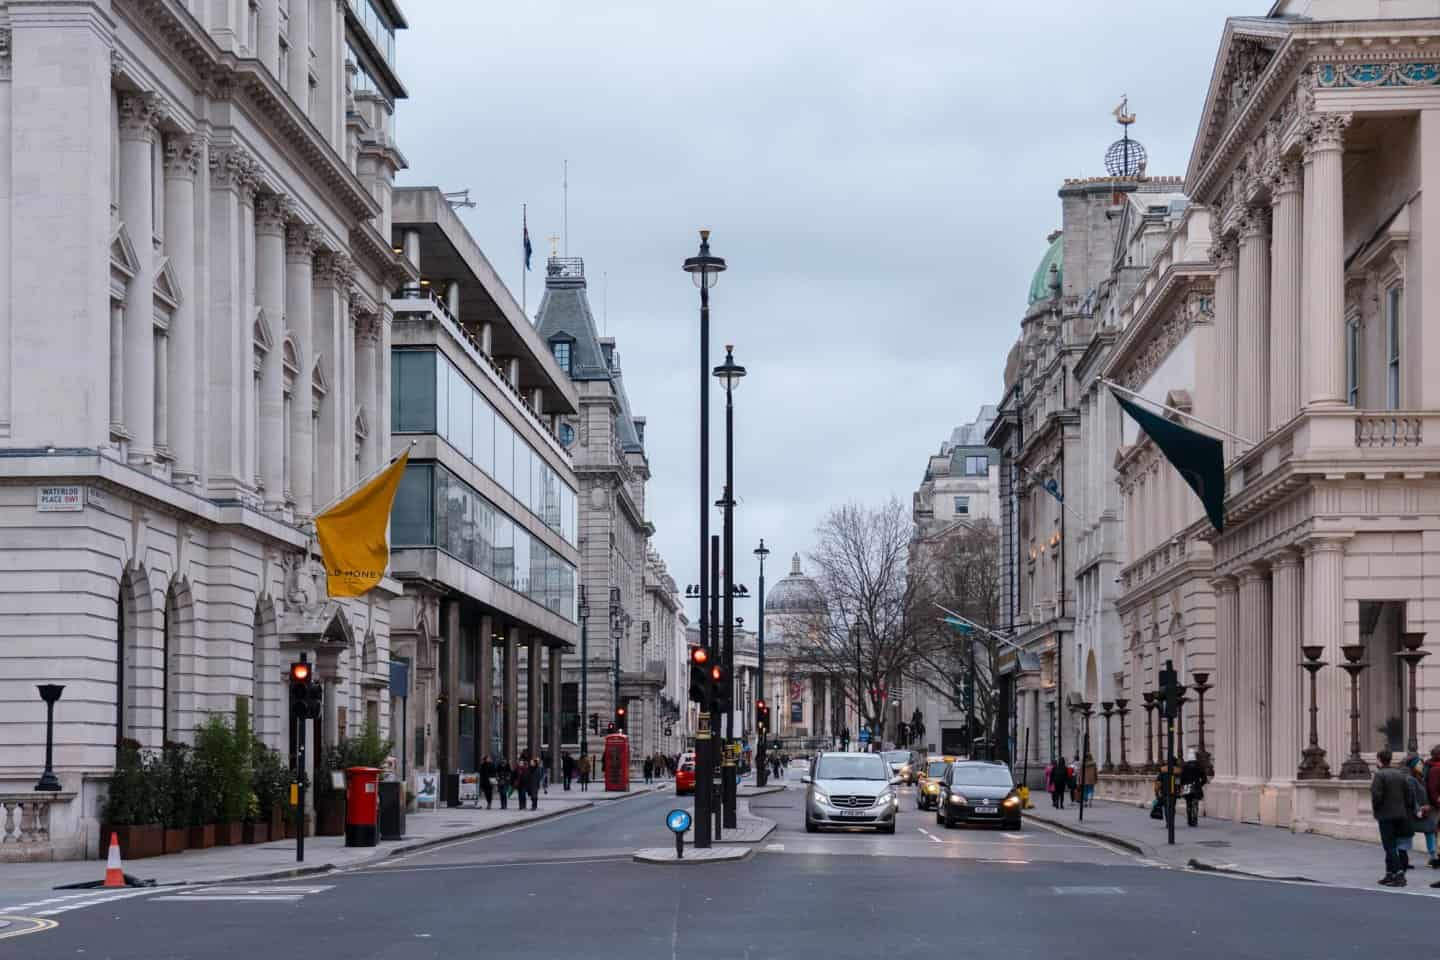 Looking along one of London's most famous streets, Pall Mall, towards Trafalgar Square